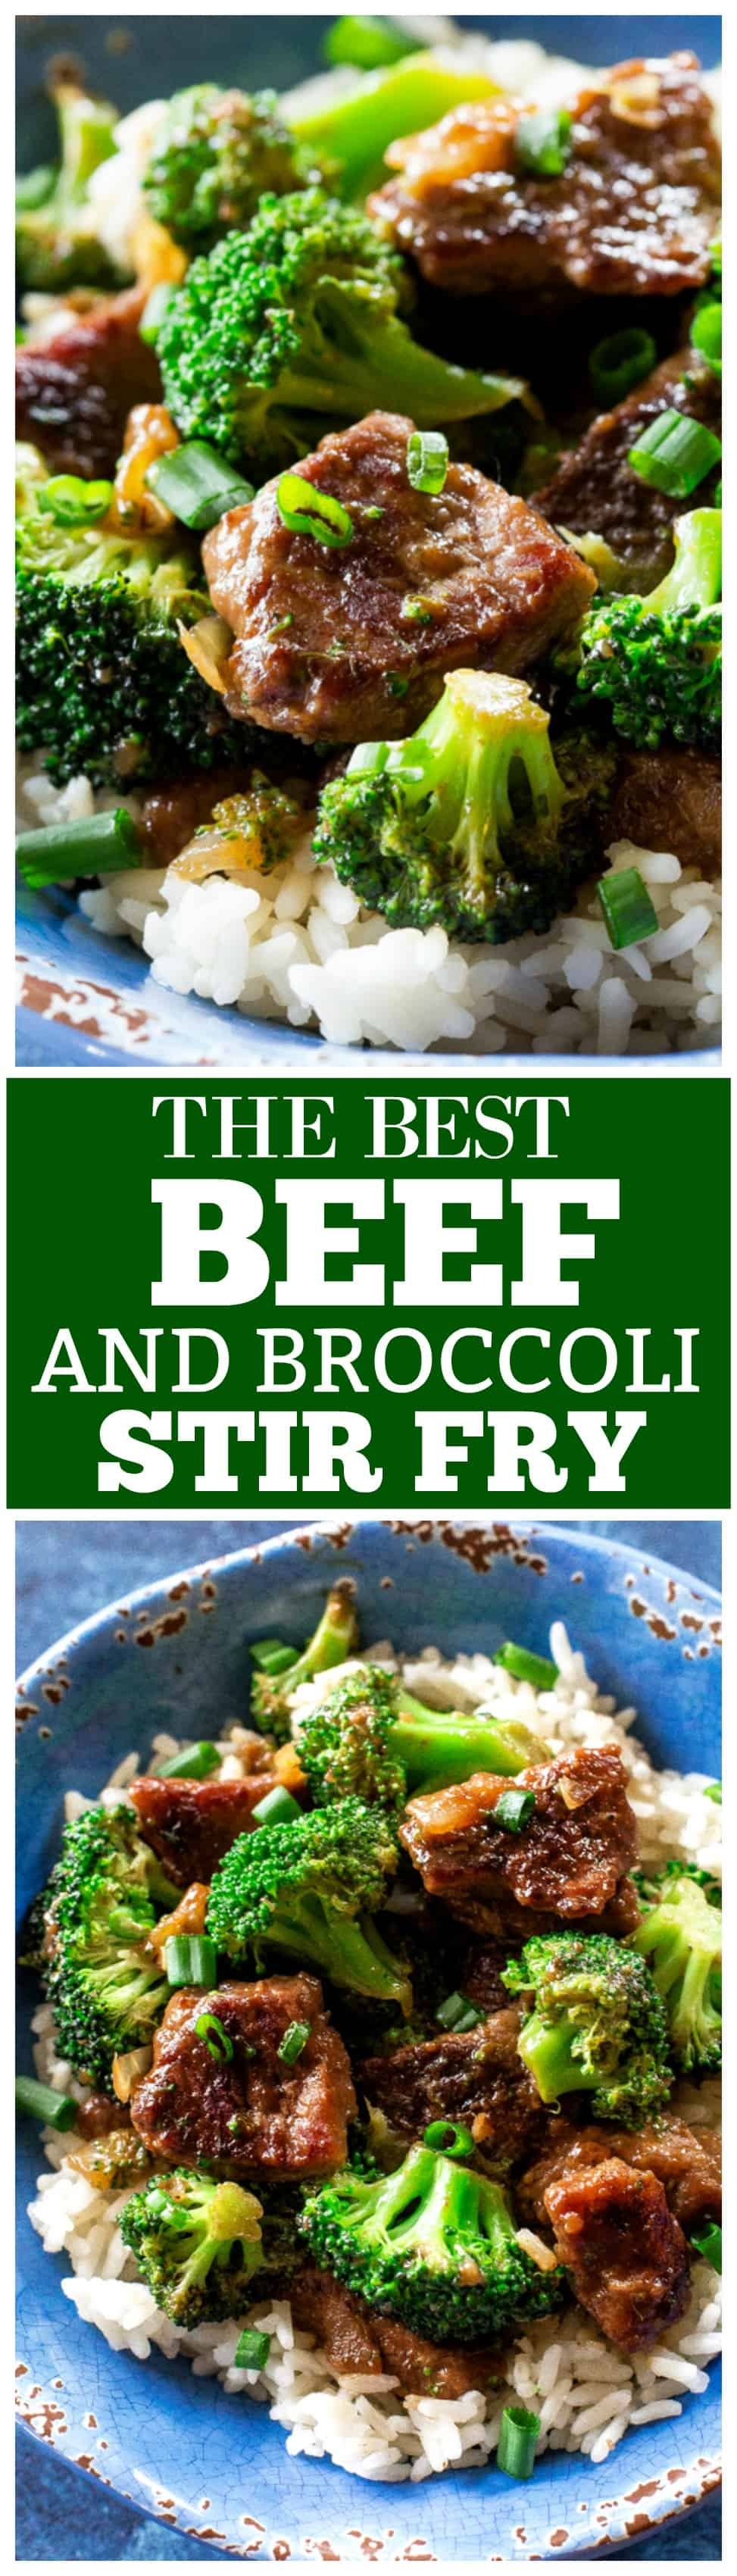 Beef and Broccoli Stir Fry - an easy dinner that tastes like take out! #beef #broccoli #stirfry #easy #dinner